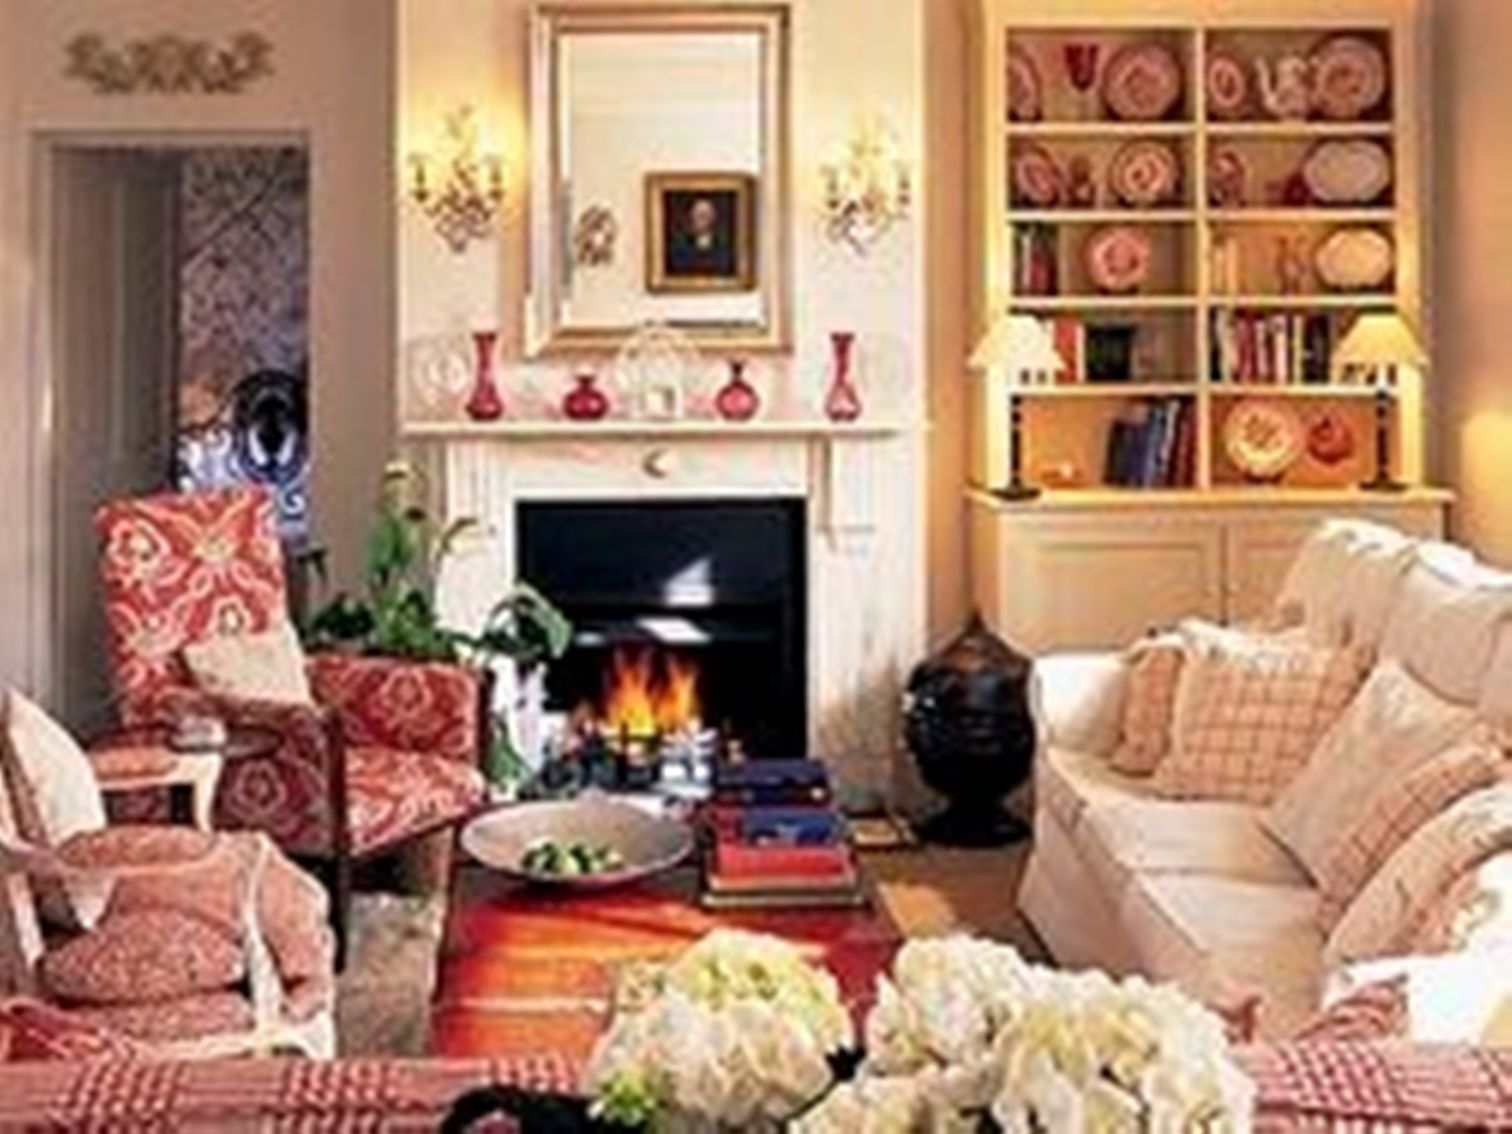 Barber interiors joy studio design gallery best design for English country living room ideas